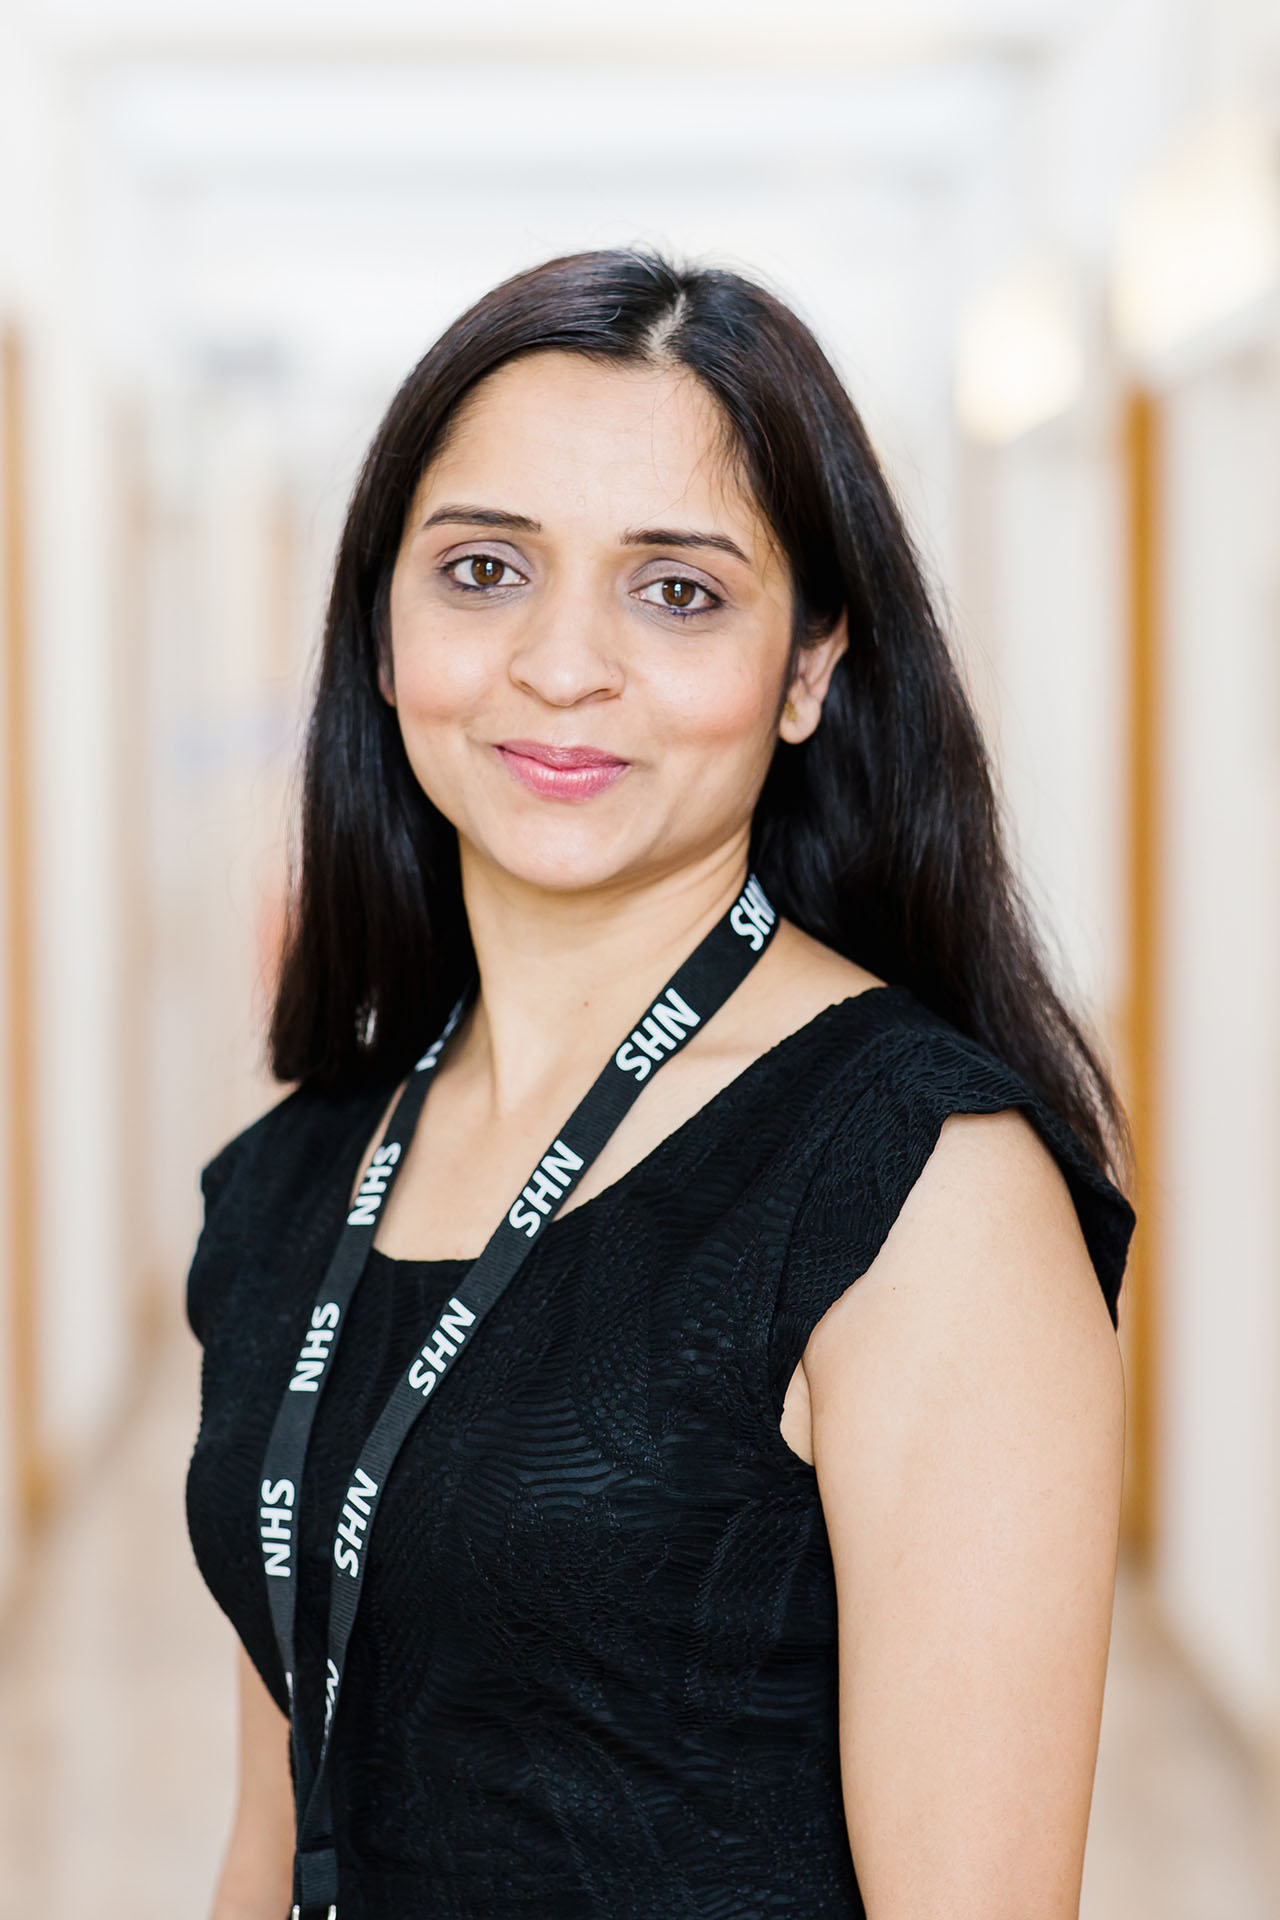 Ms Kavita Patel - Medical Receptionist | AdministratorKavita is compassionate and caring. She is a logical thinker who is attentive to detail.Experience: 2.5 yearsLanguages: English | Gujarati | Hindi | UrduAchievements:• BSc in Chemistry (Gujarat University)